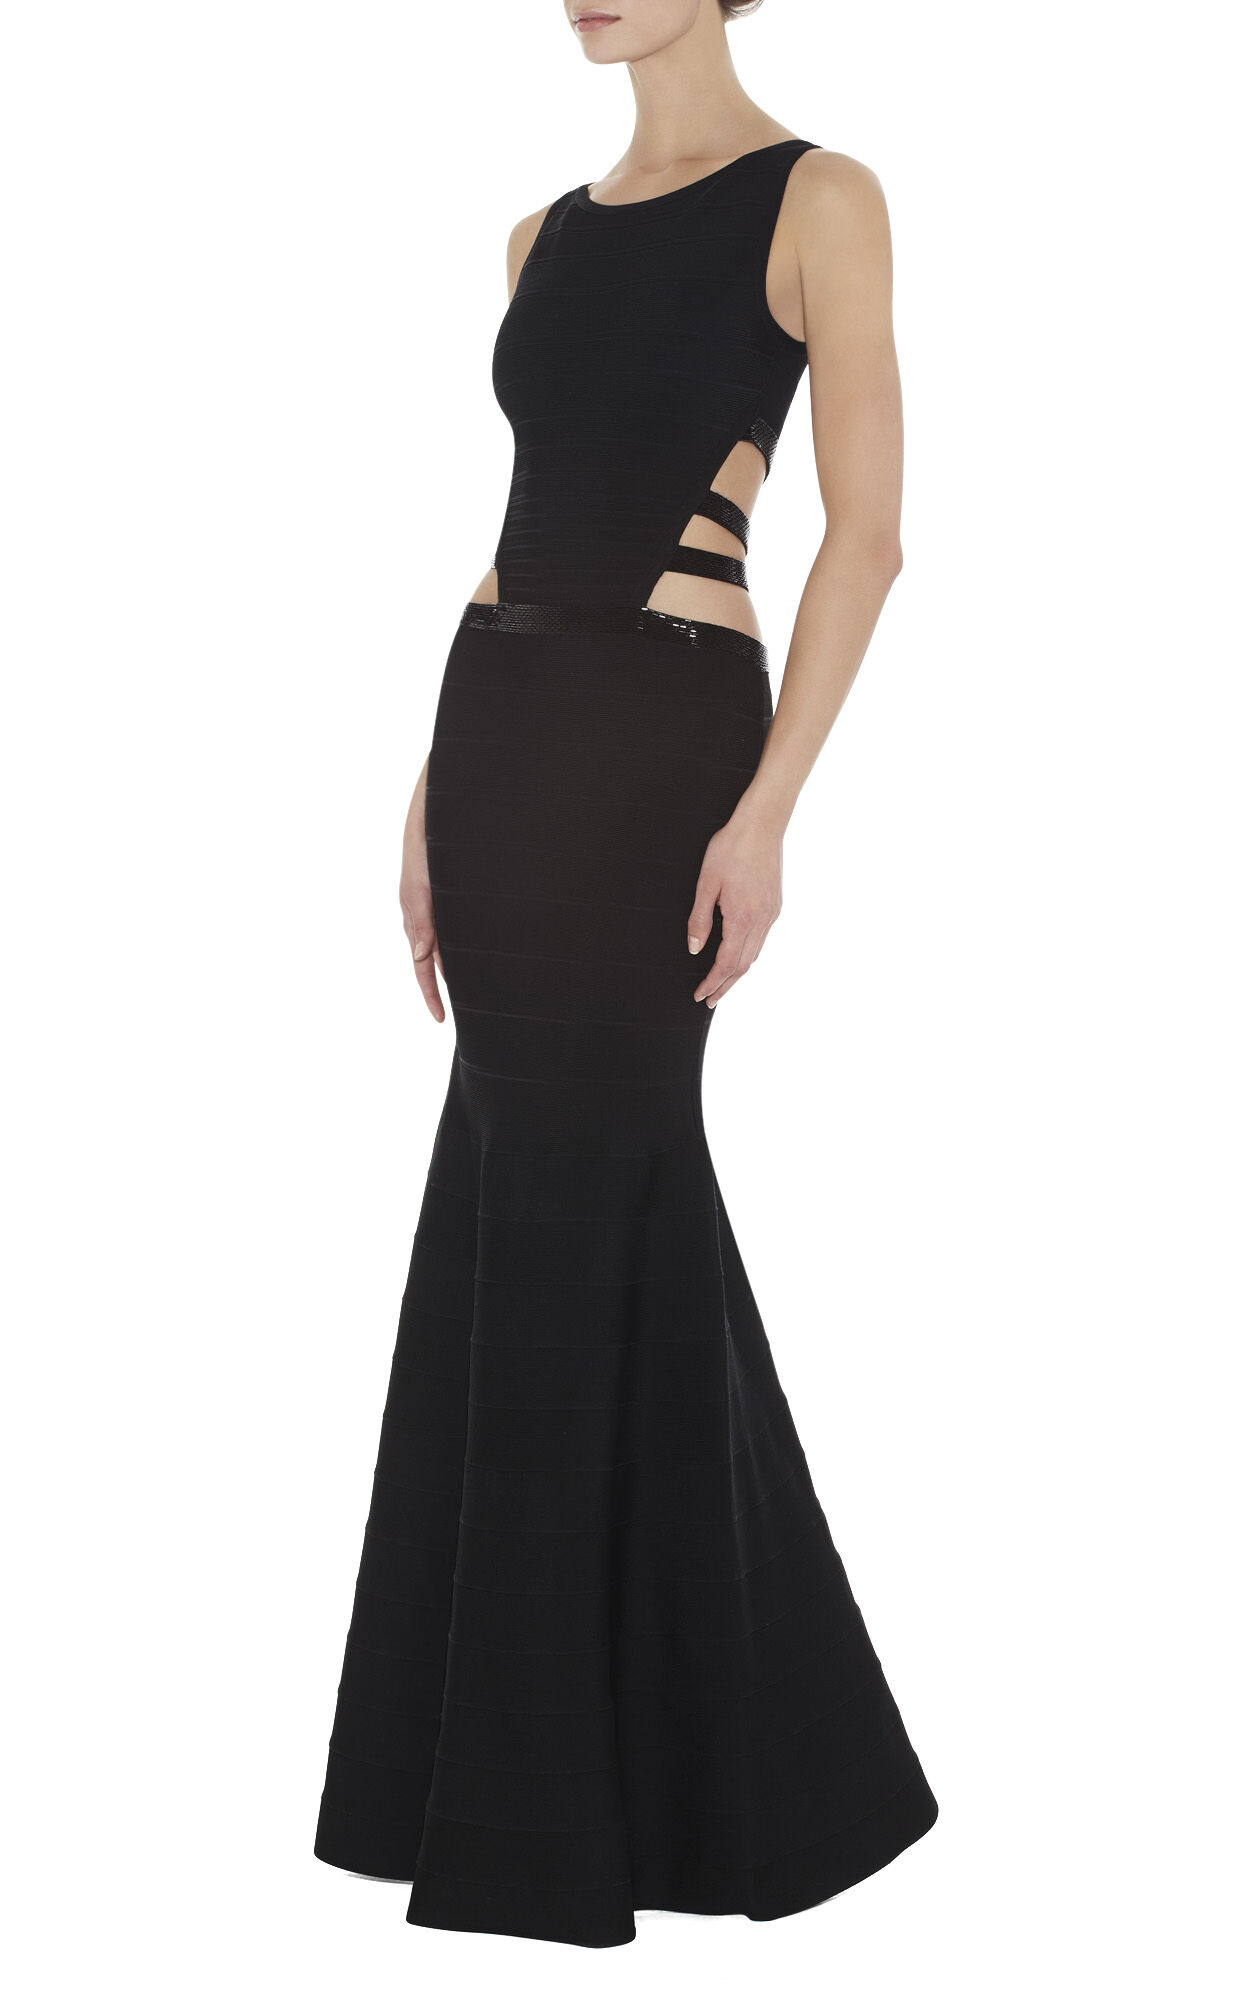 Jamari Beaded-Strapping Dresses